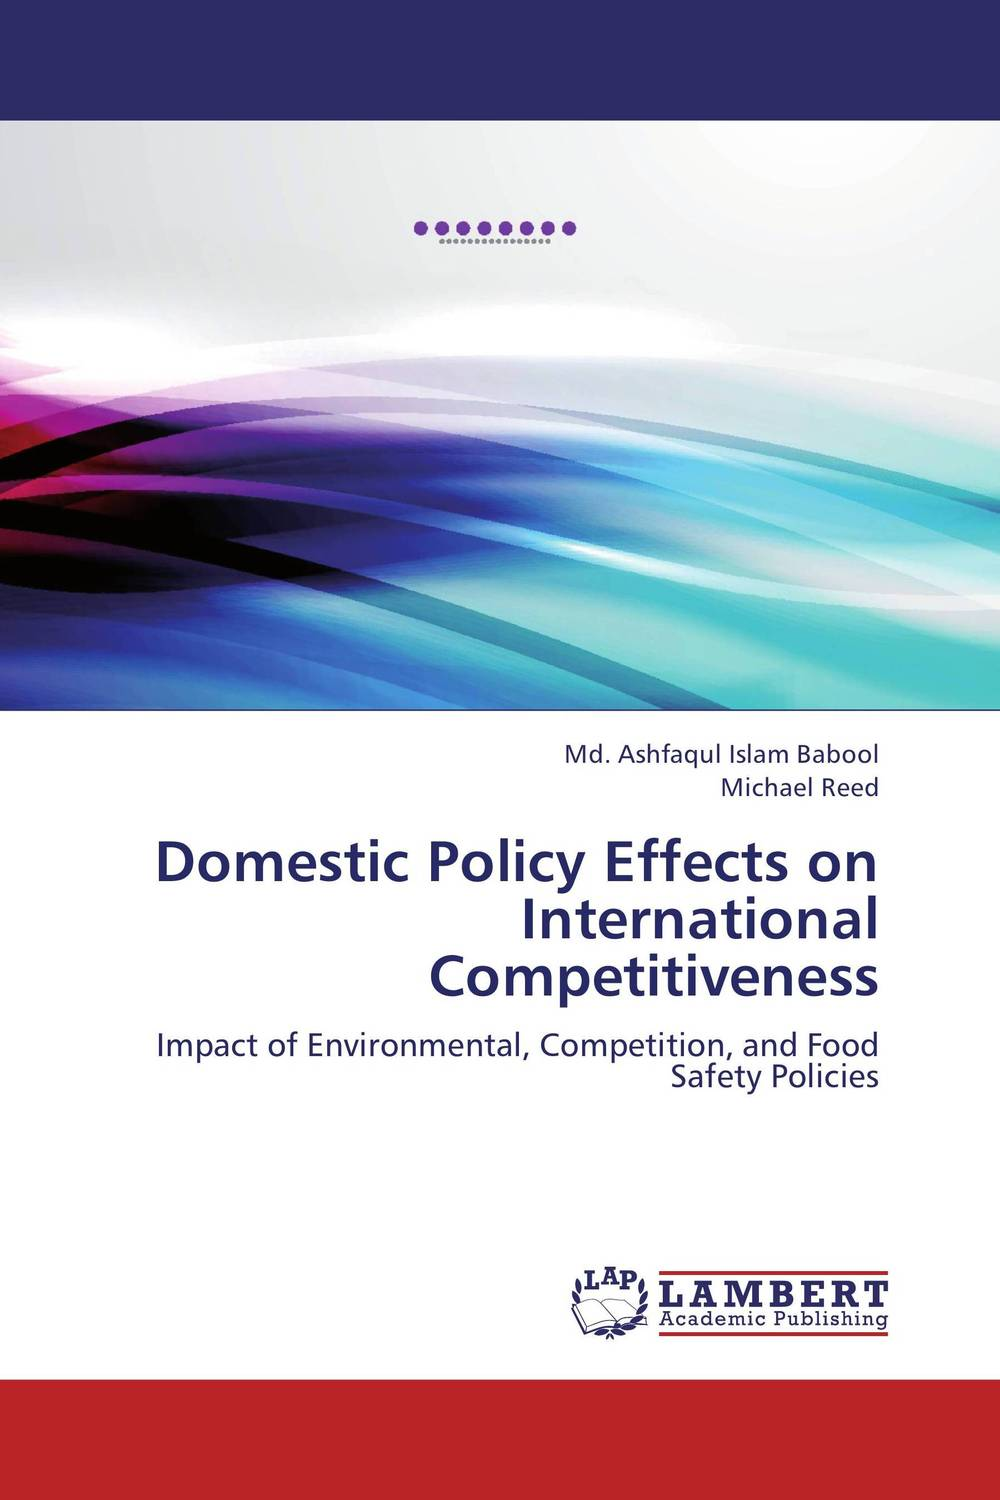 Domestic Policy Effects on International Competitiveness psychiatric disorders in postpartum period